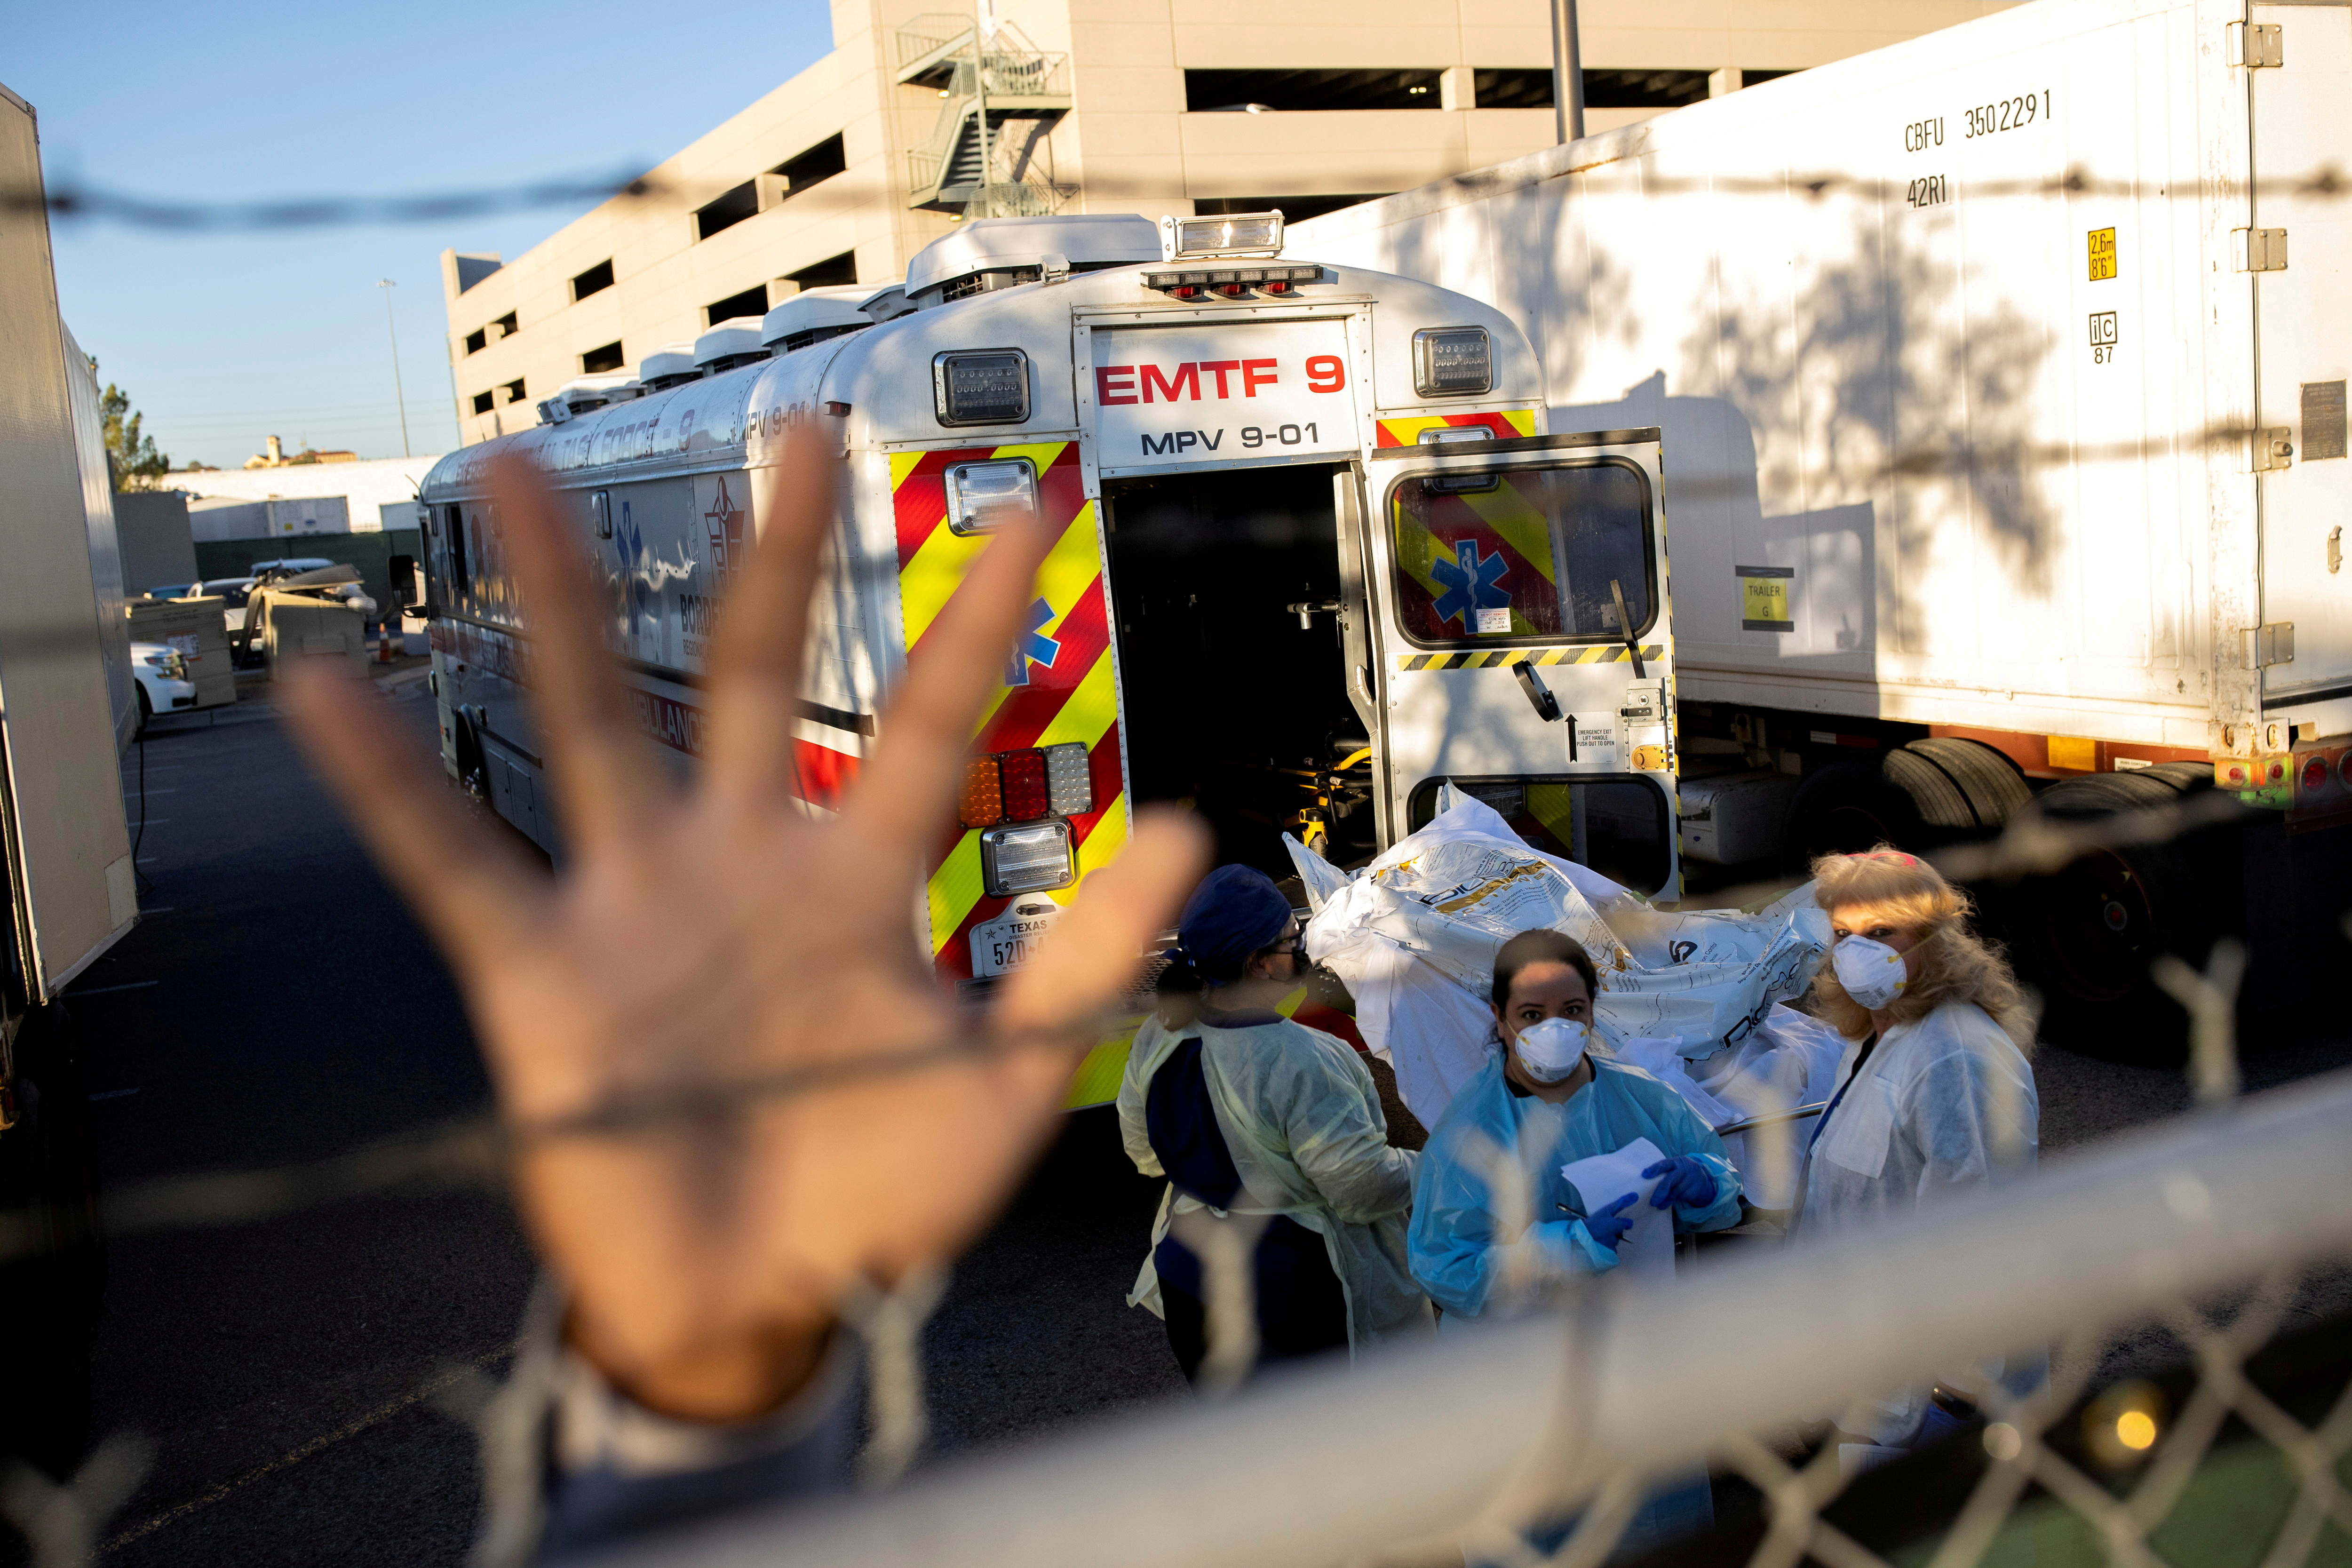 An El Paso County Sheriff's Officer tries to block photographs from being taken as bodies are moved to refrigerated trailers, deployed during a surge of coronavirus disease (COVID-19) deaths, outside the County of El Paso Medical Examiner's Office in El Paso, Texas, U.S. November 16, 2020.  REUTERS/Ivan Pierre Aguirre